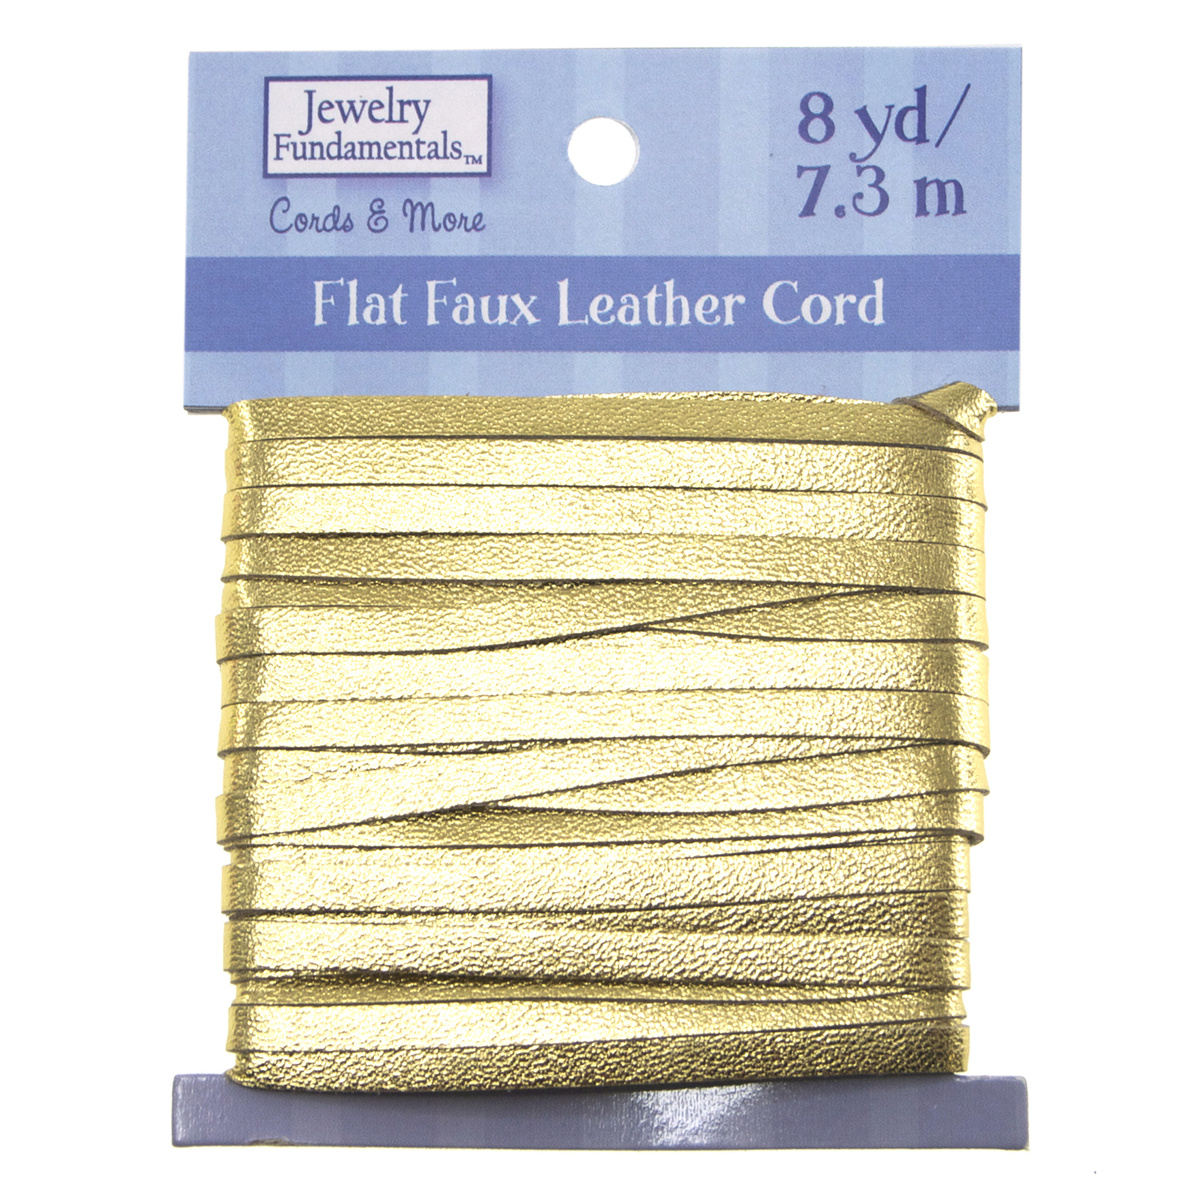 Jewelry Fundamentals Cords&More Flat Faux Leather Cord-Yellow Gold Metallic